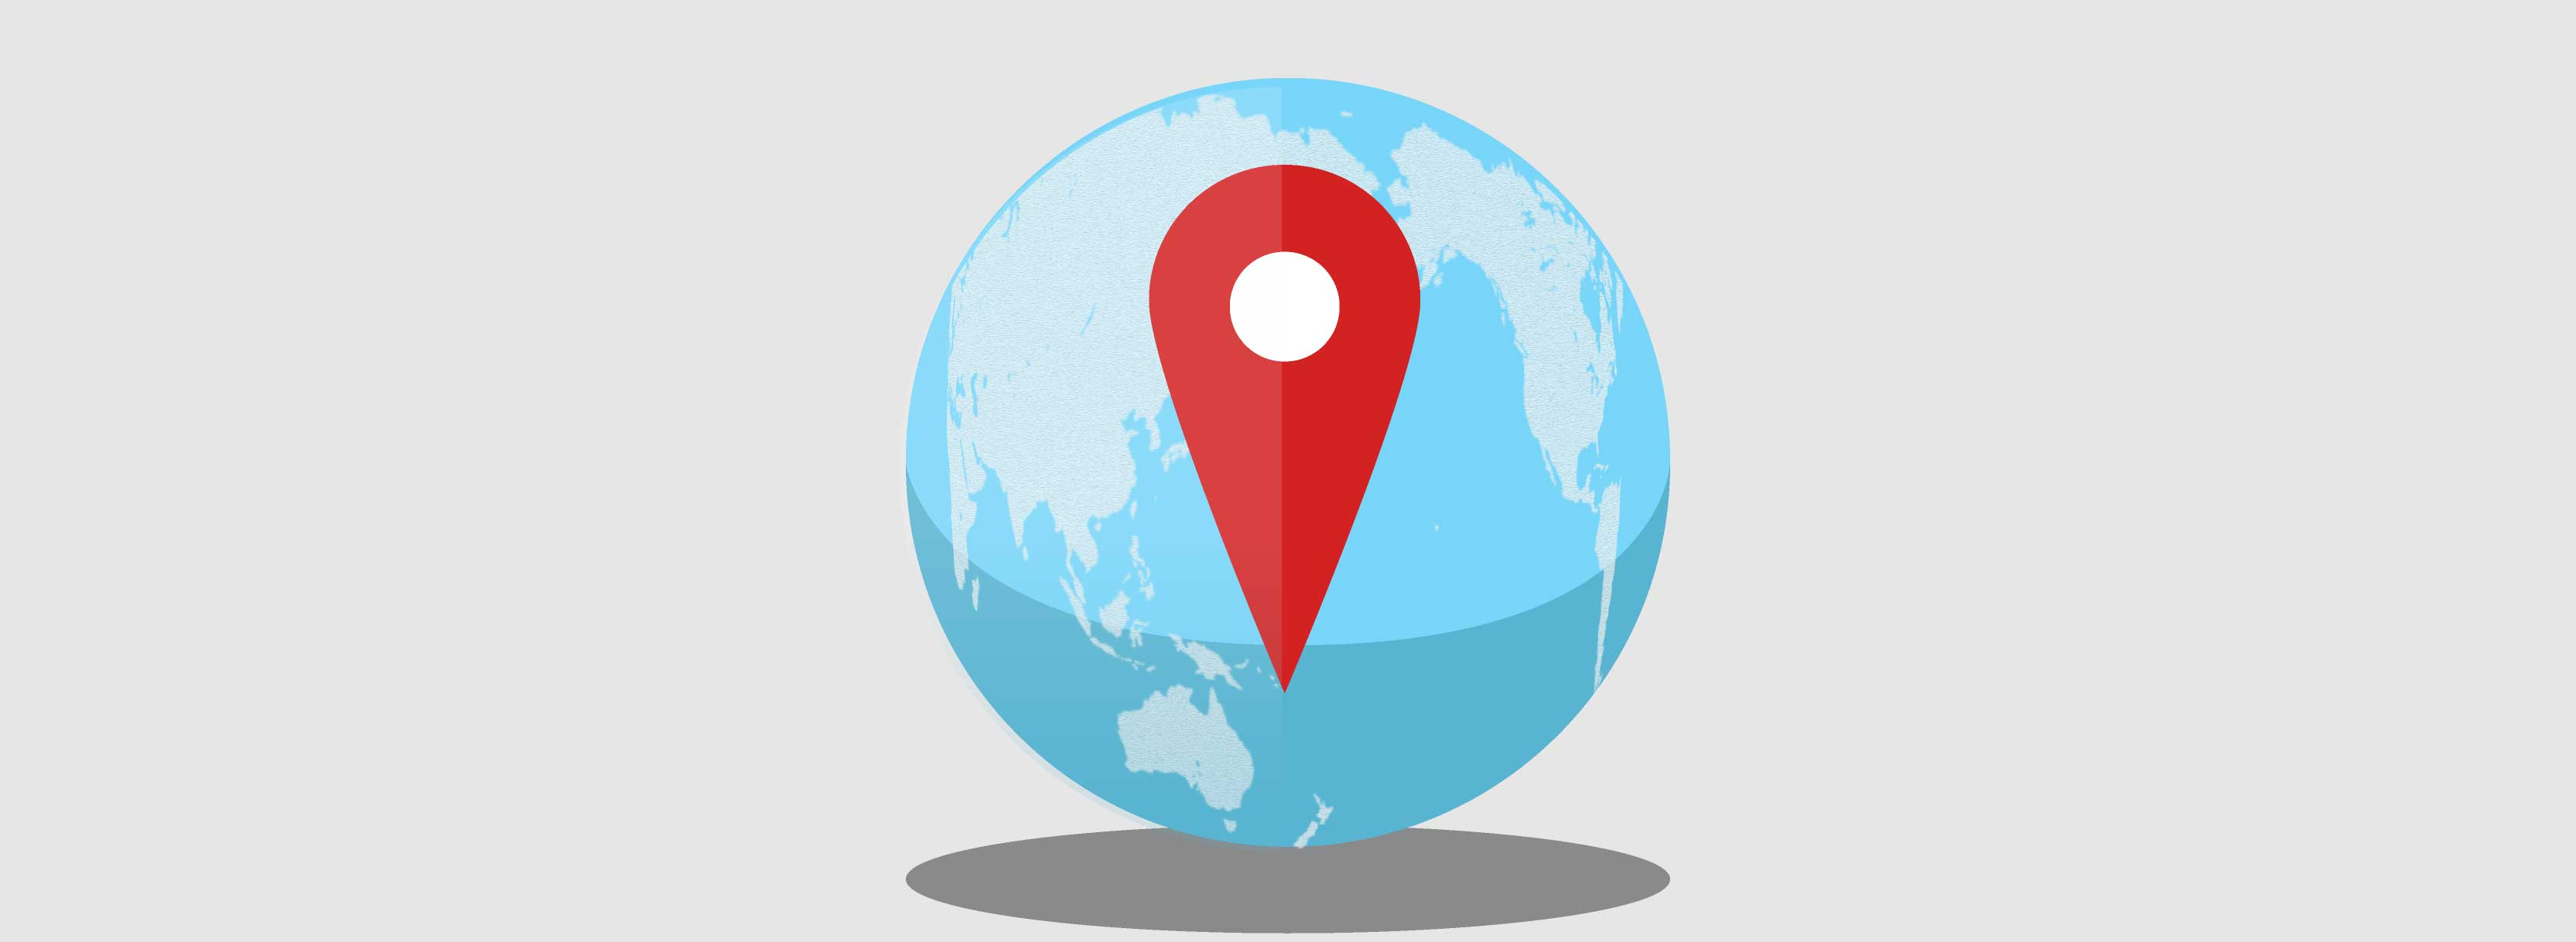 How accurate are IP geolocation services?